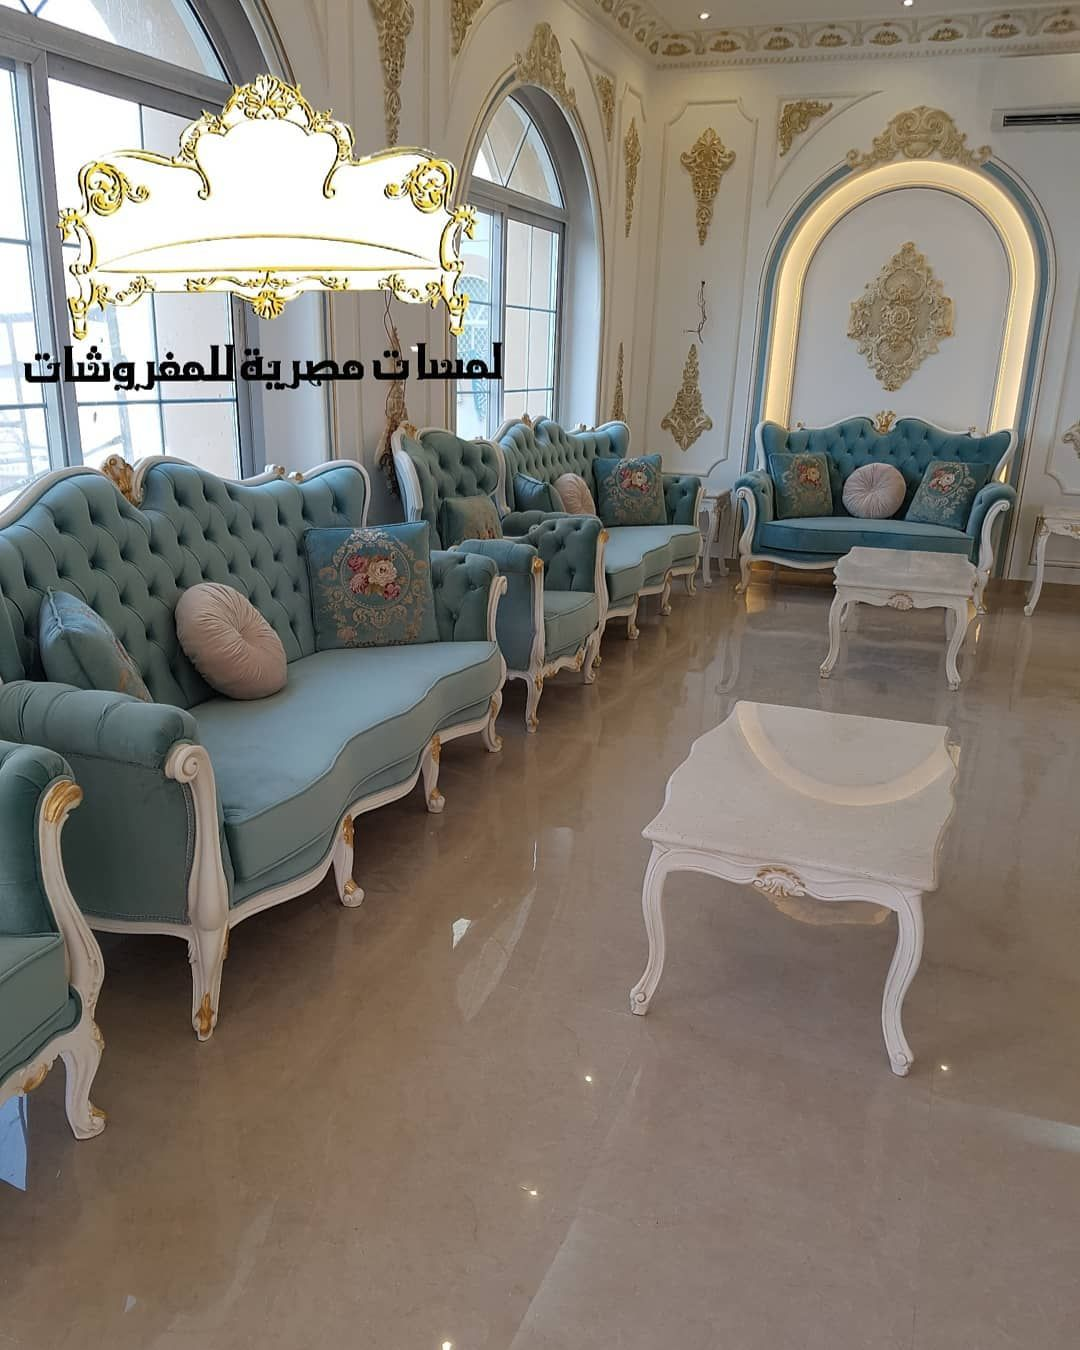 Pin By Calvin On Room Decor Pastel House Decor Royal Furniture